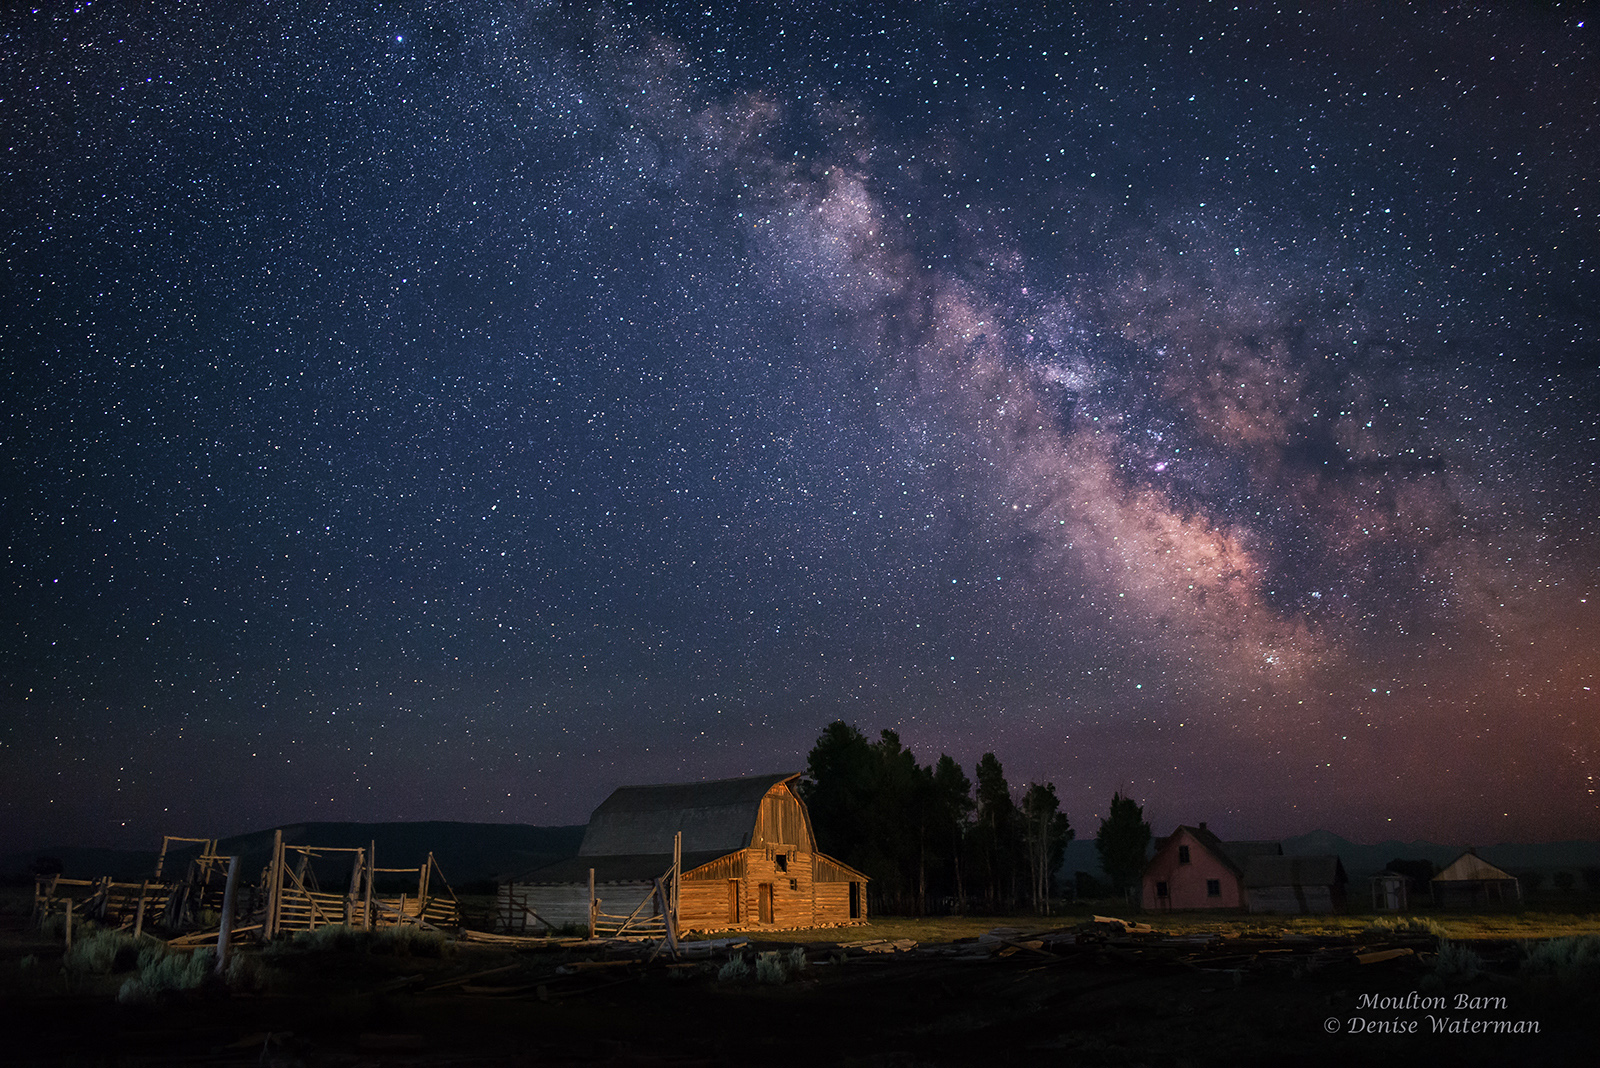 Into The Night Photography: How to Photograph Milky Way